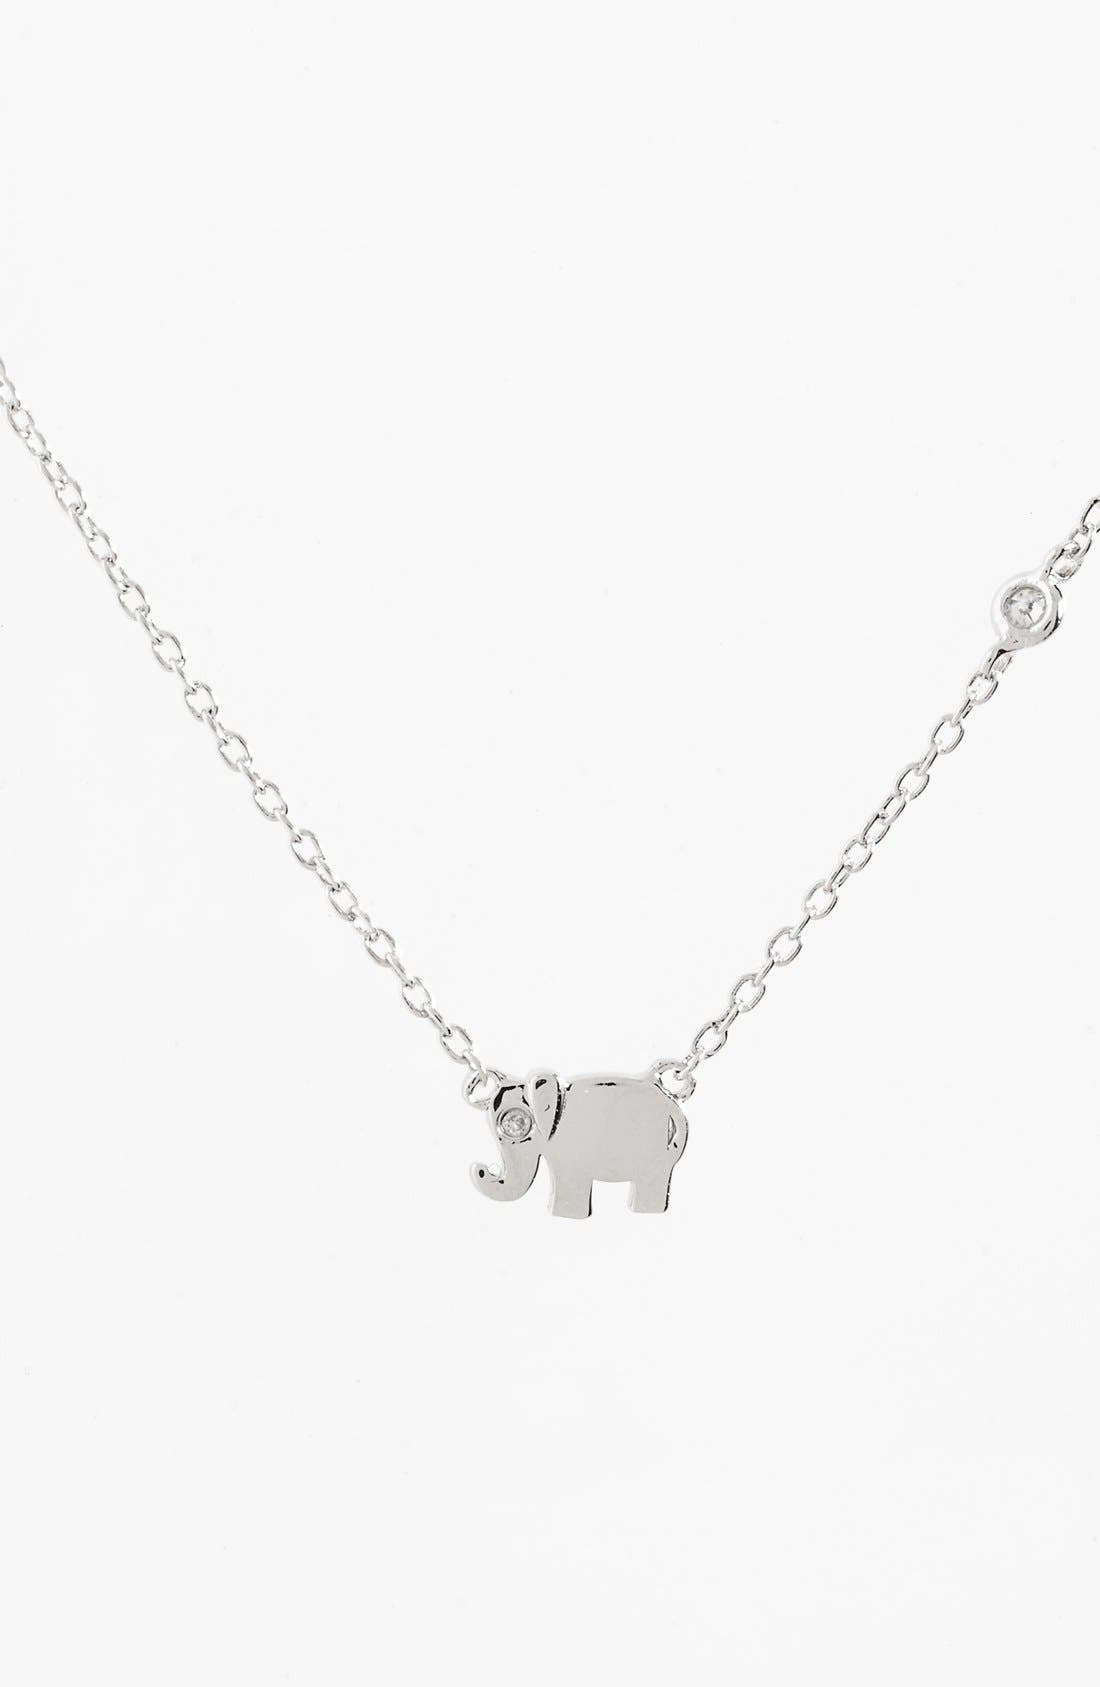 SHY by Sydney Evan Elephant Necklace,                         Main,                         color, Silver